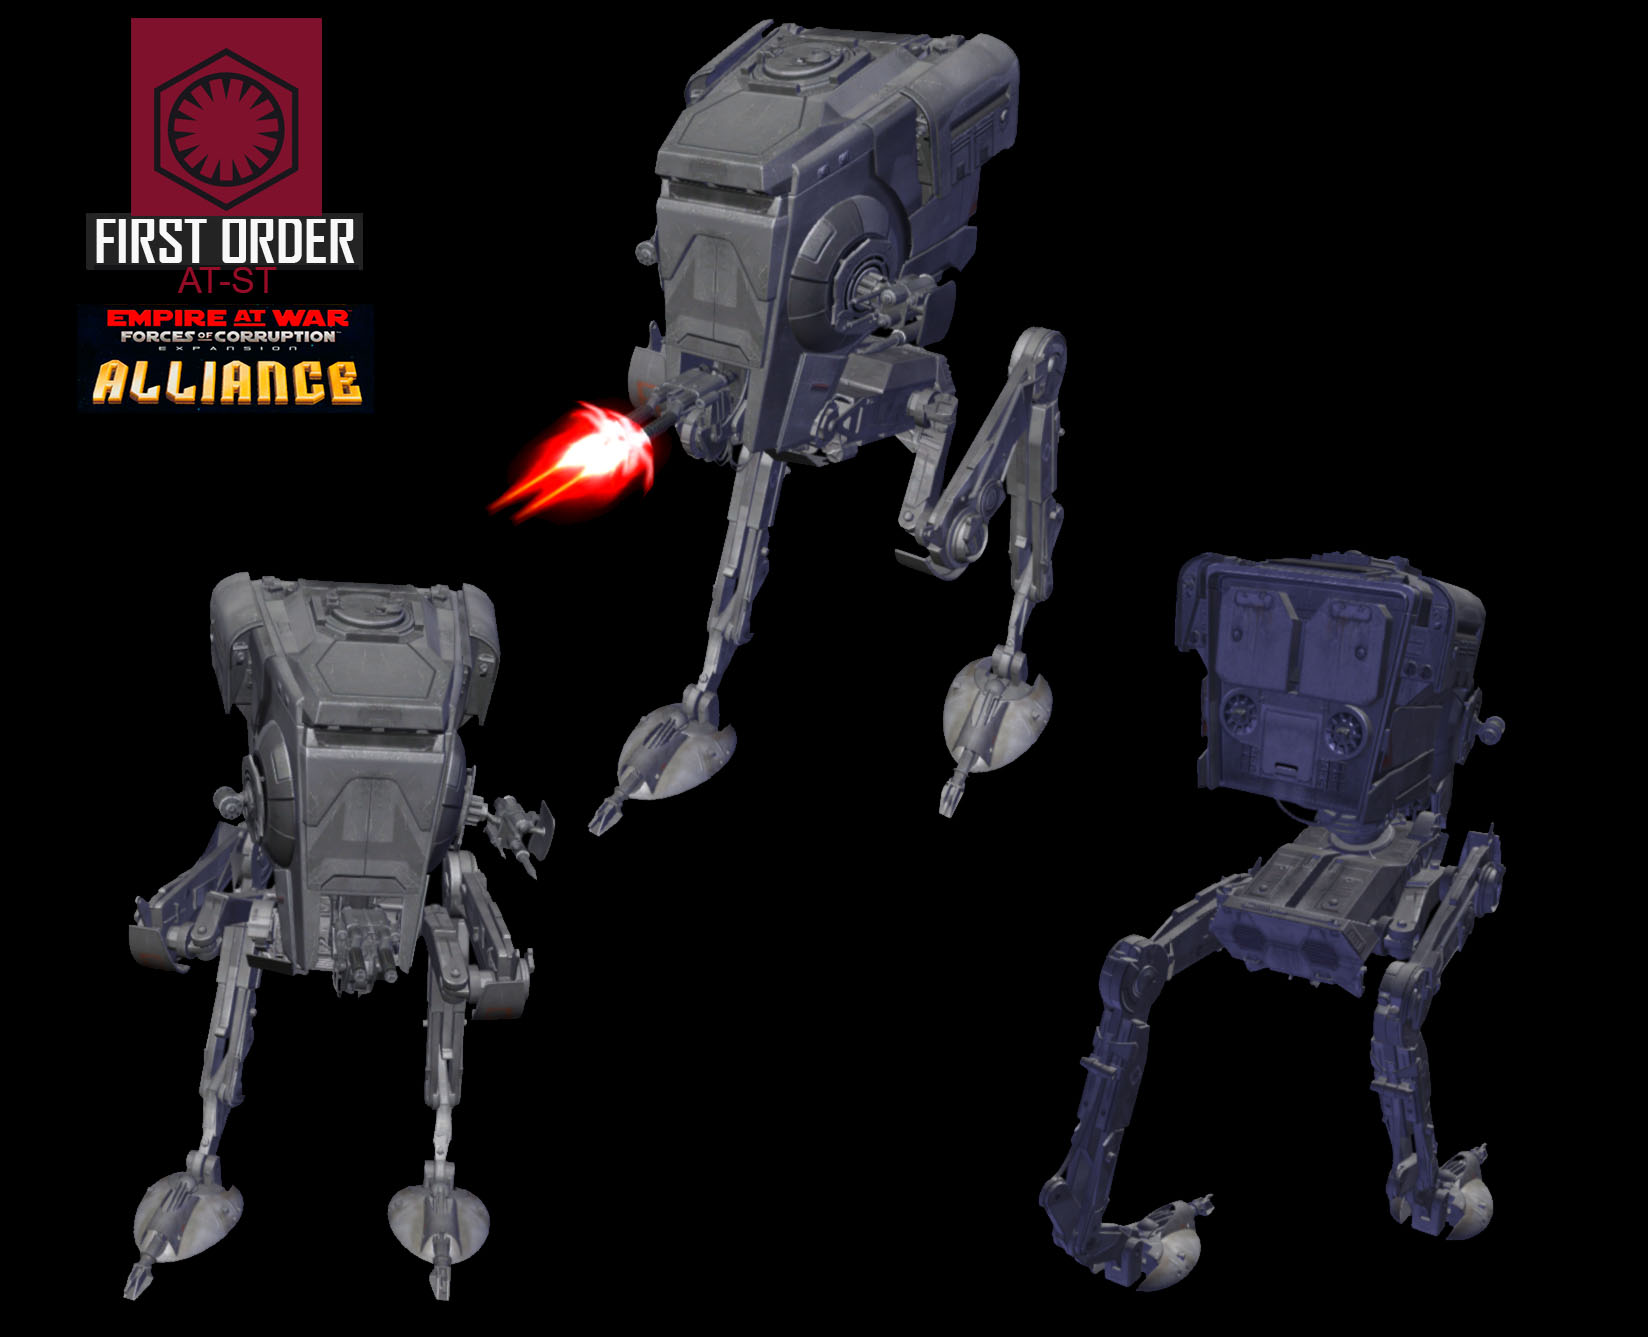 First Order At St Image Foc Alliance Star Wars From The